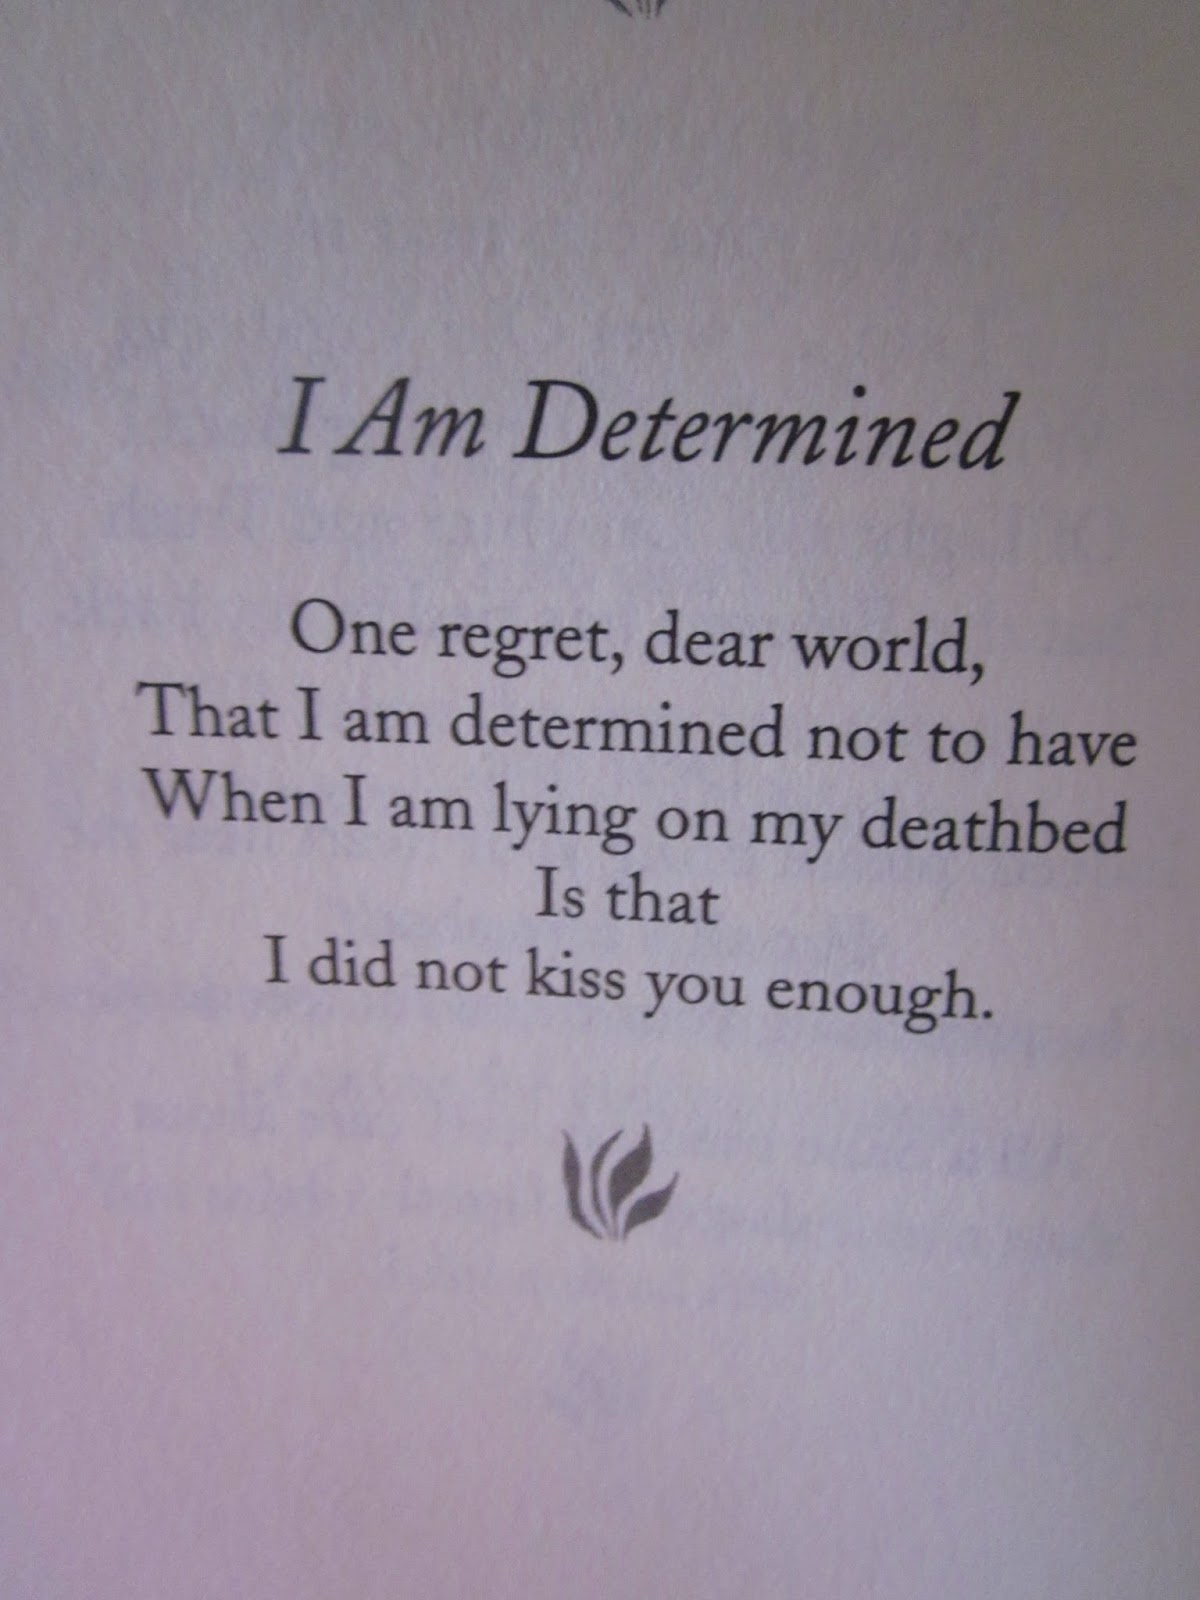 hafiz poem - photo #18